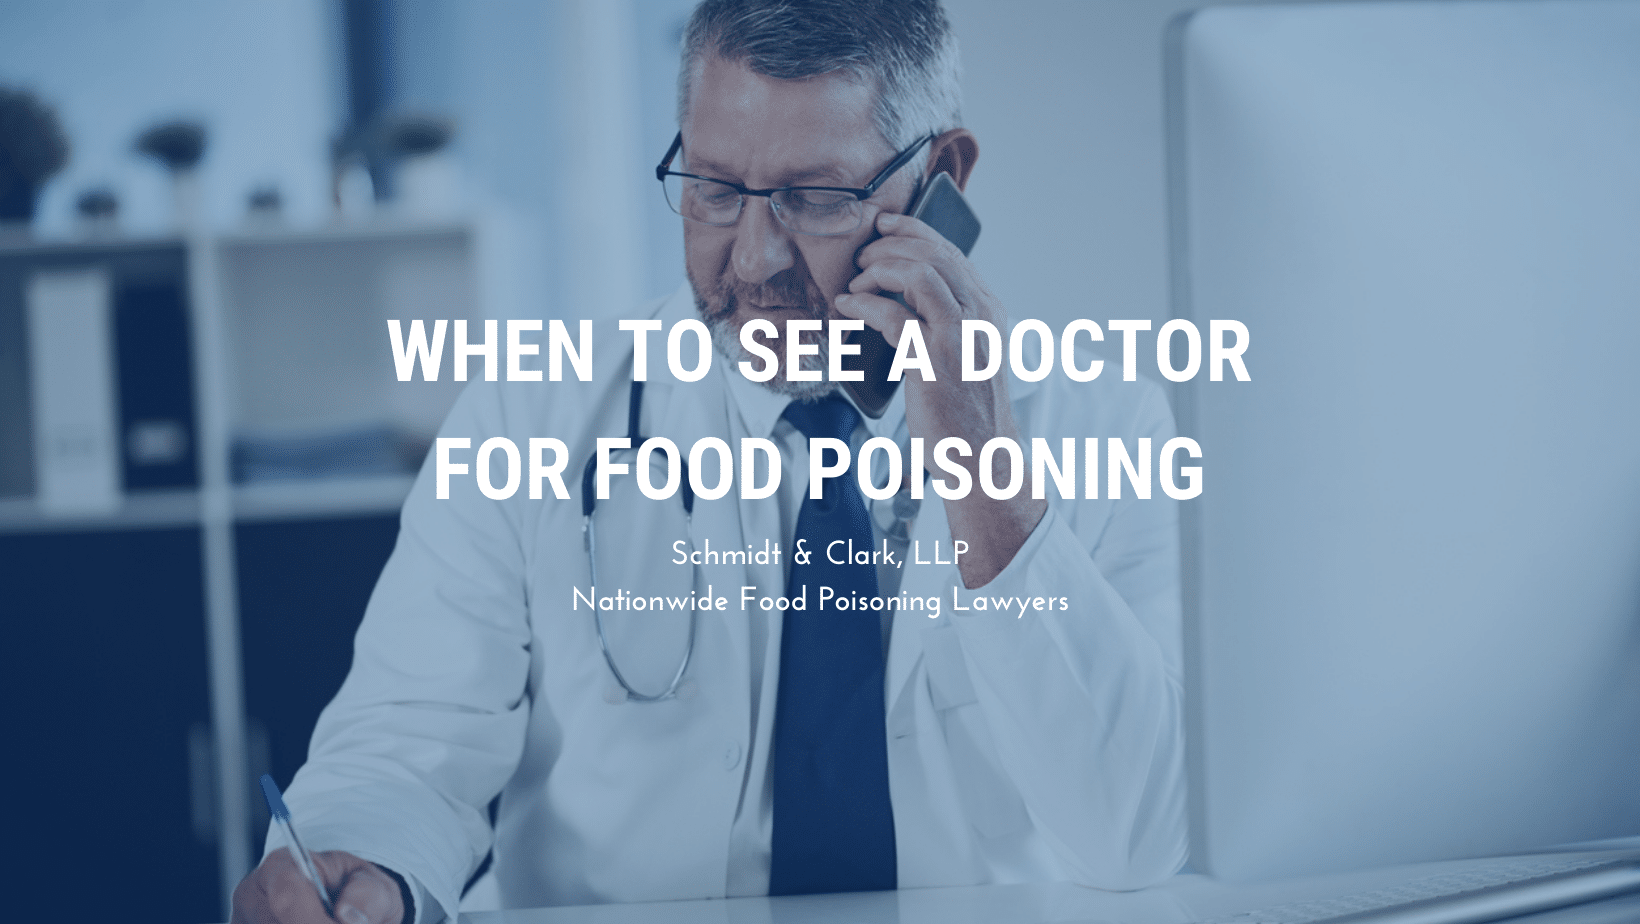 when to see a doctor food poisoning